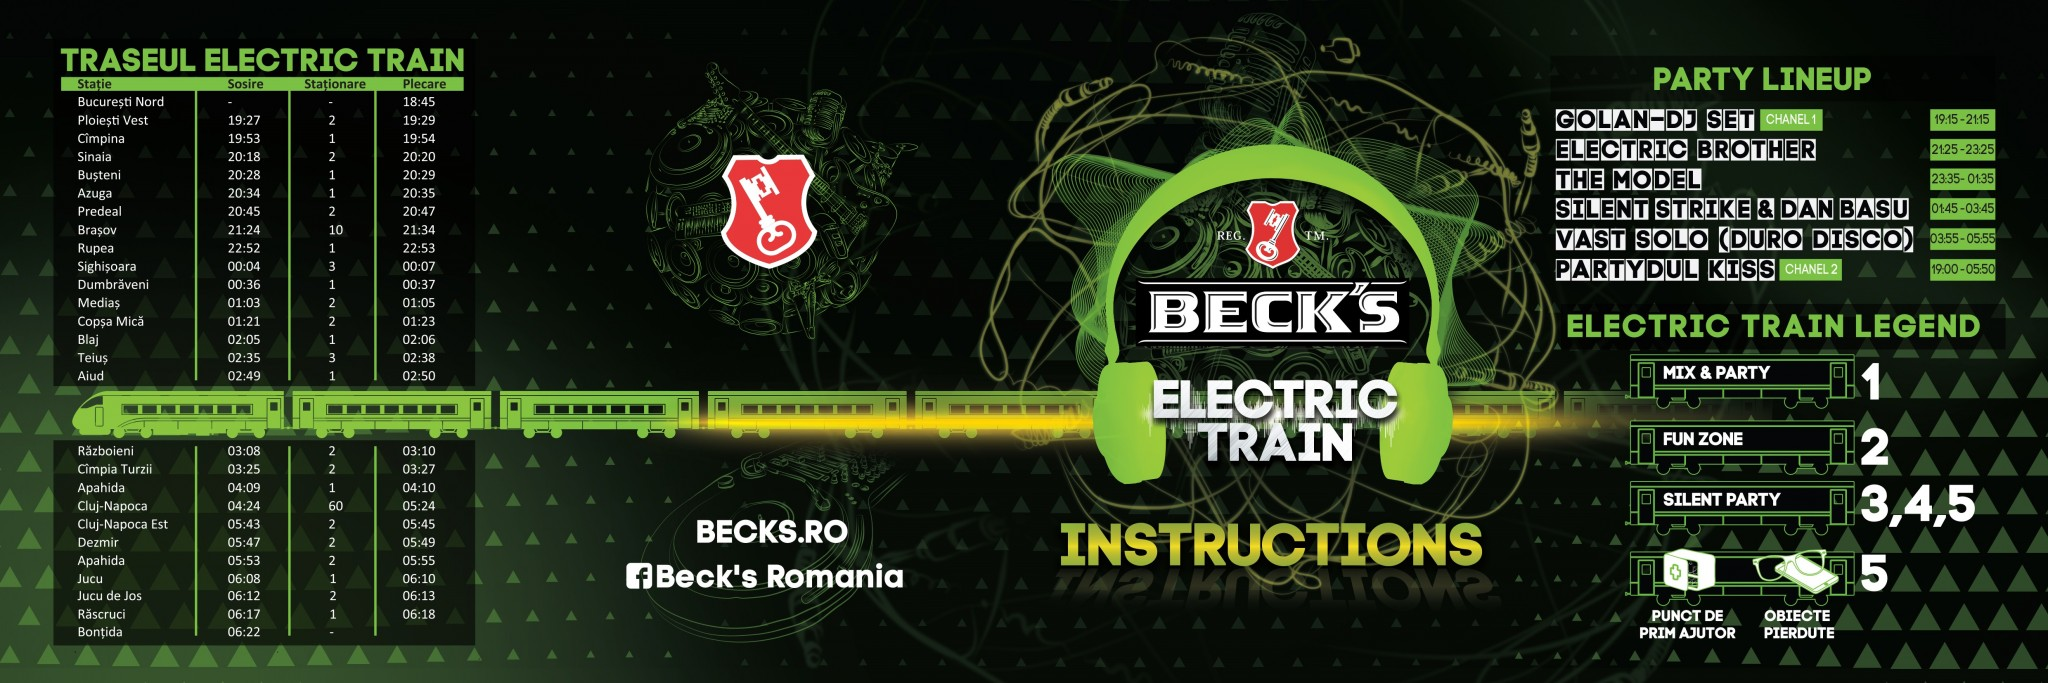 becks electric train-statii gara si program